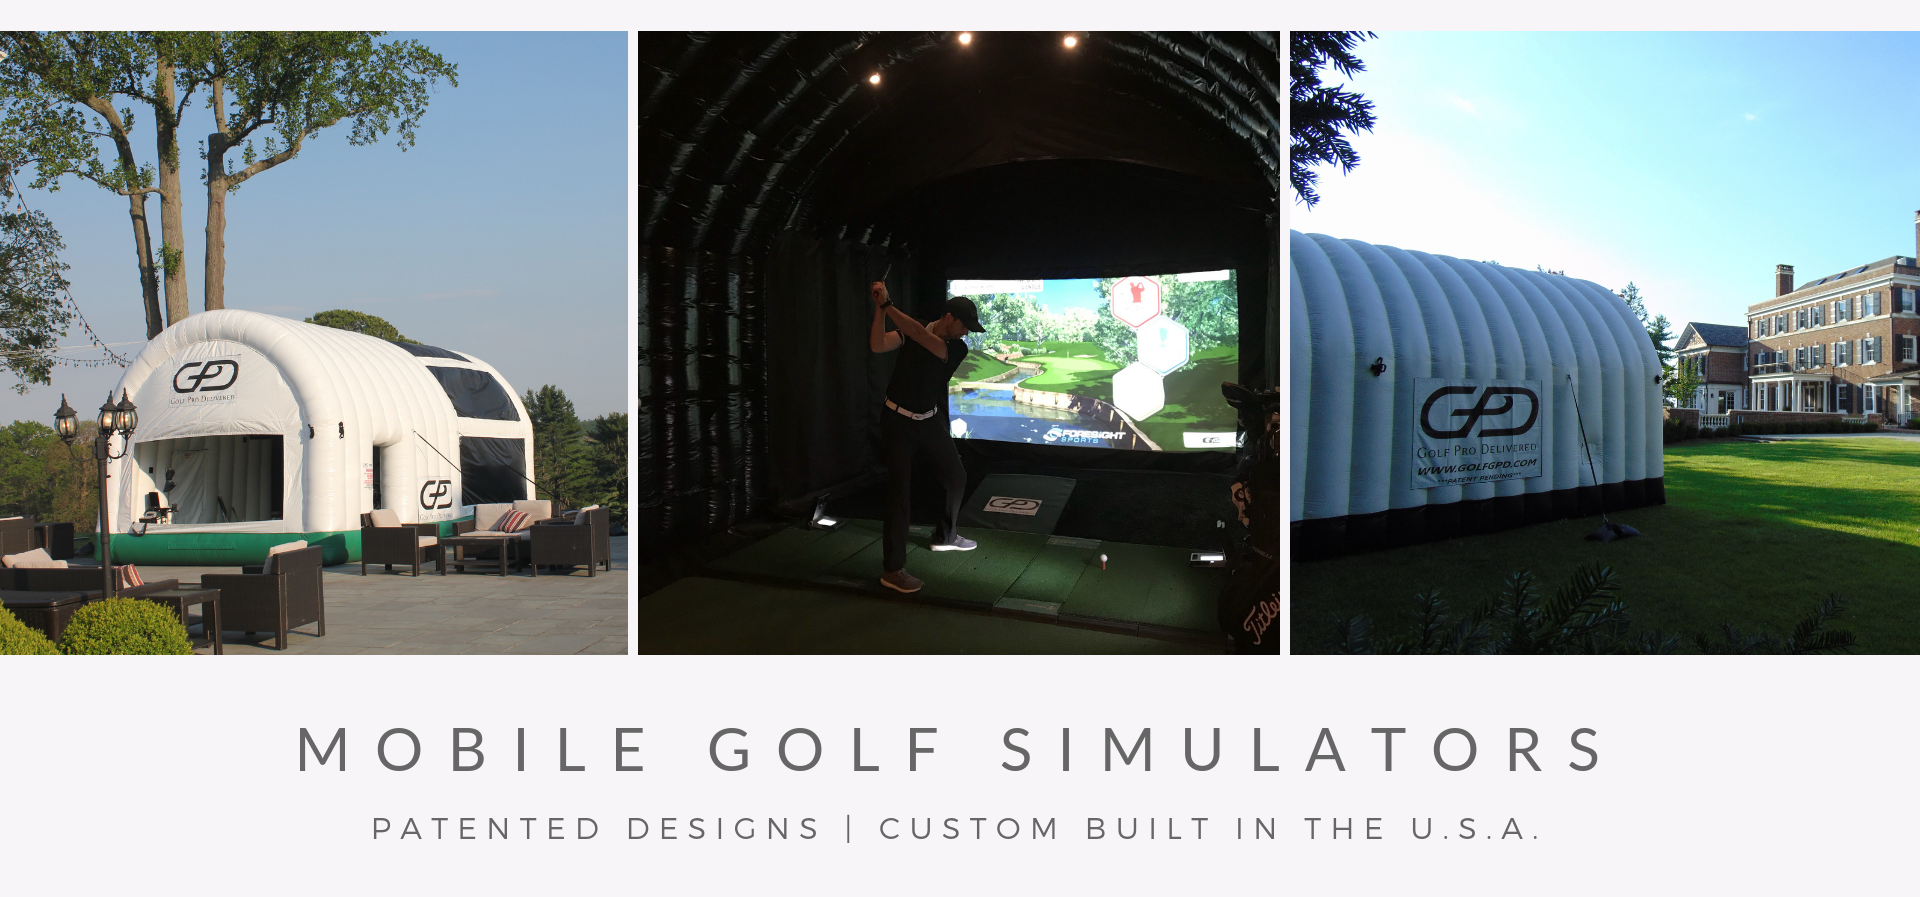 Inflatable Golf Simulators - Golf Pro Delivered